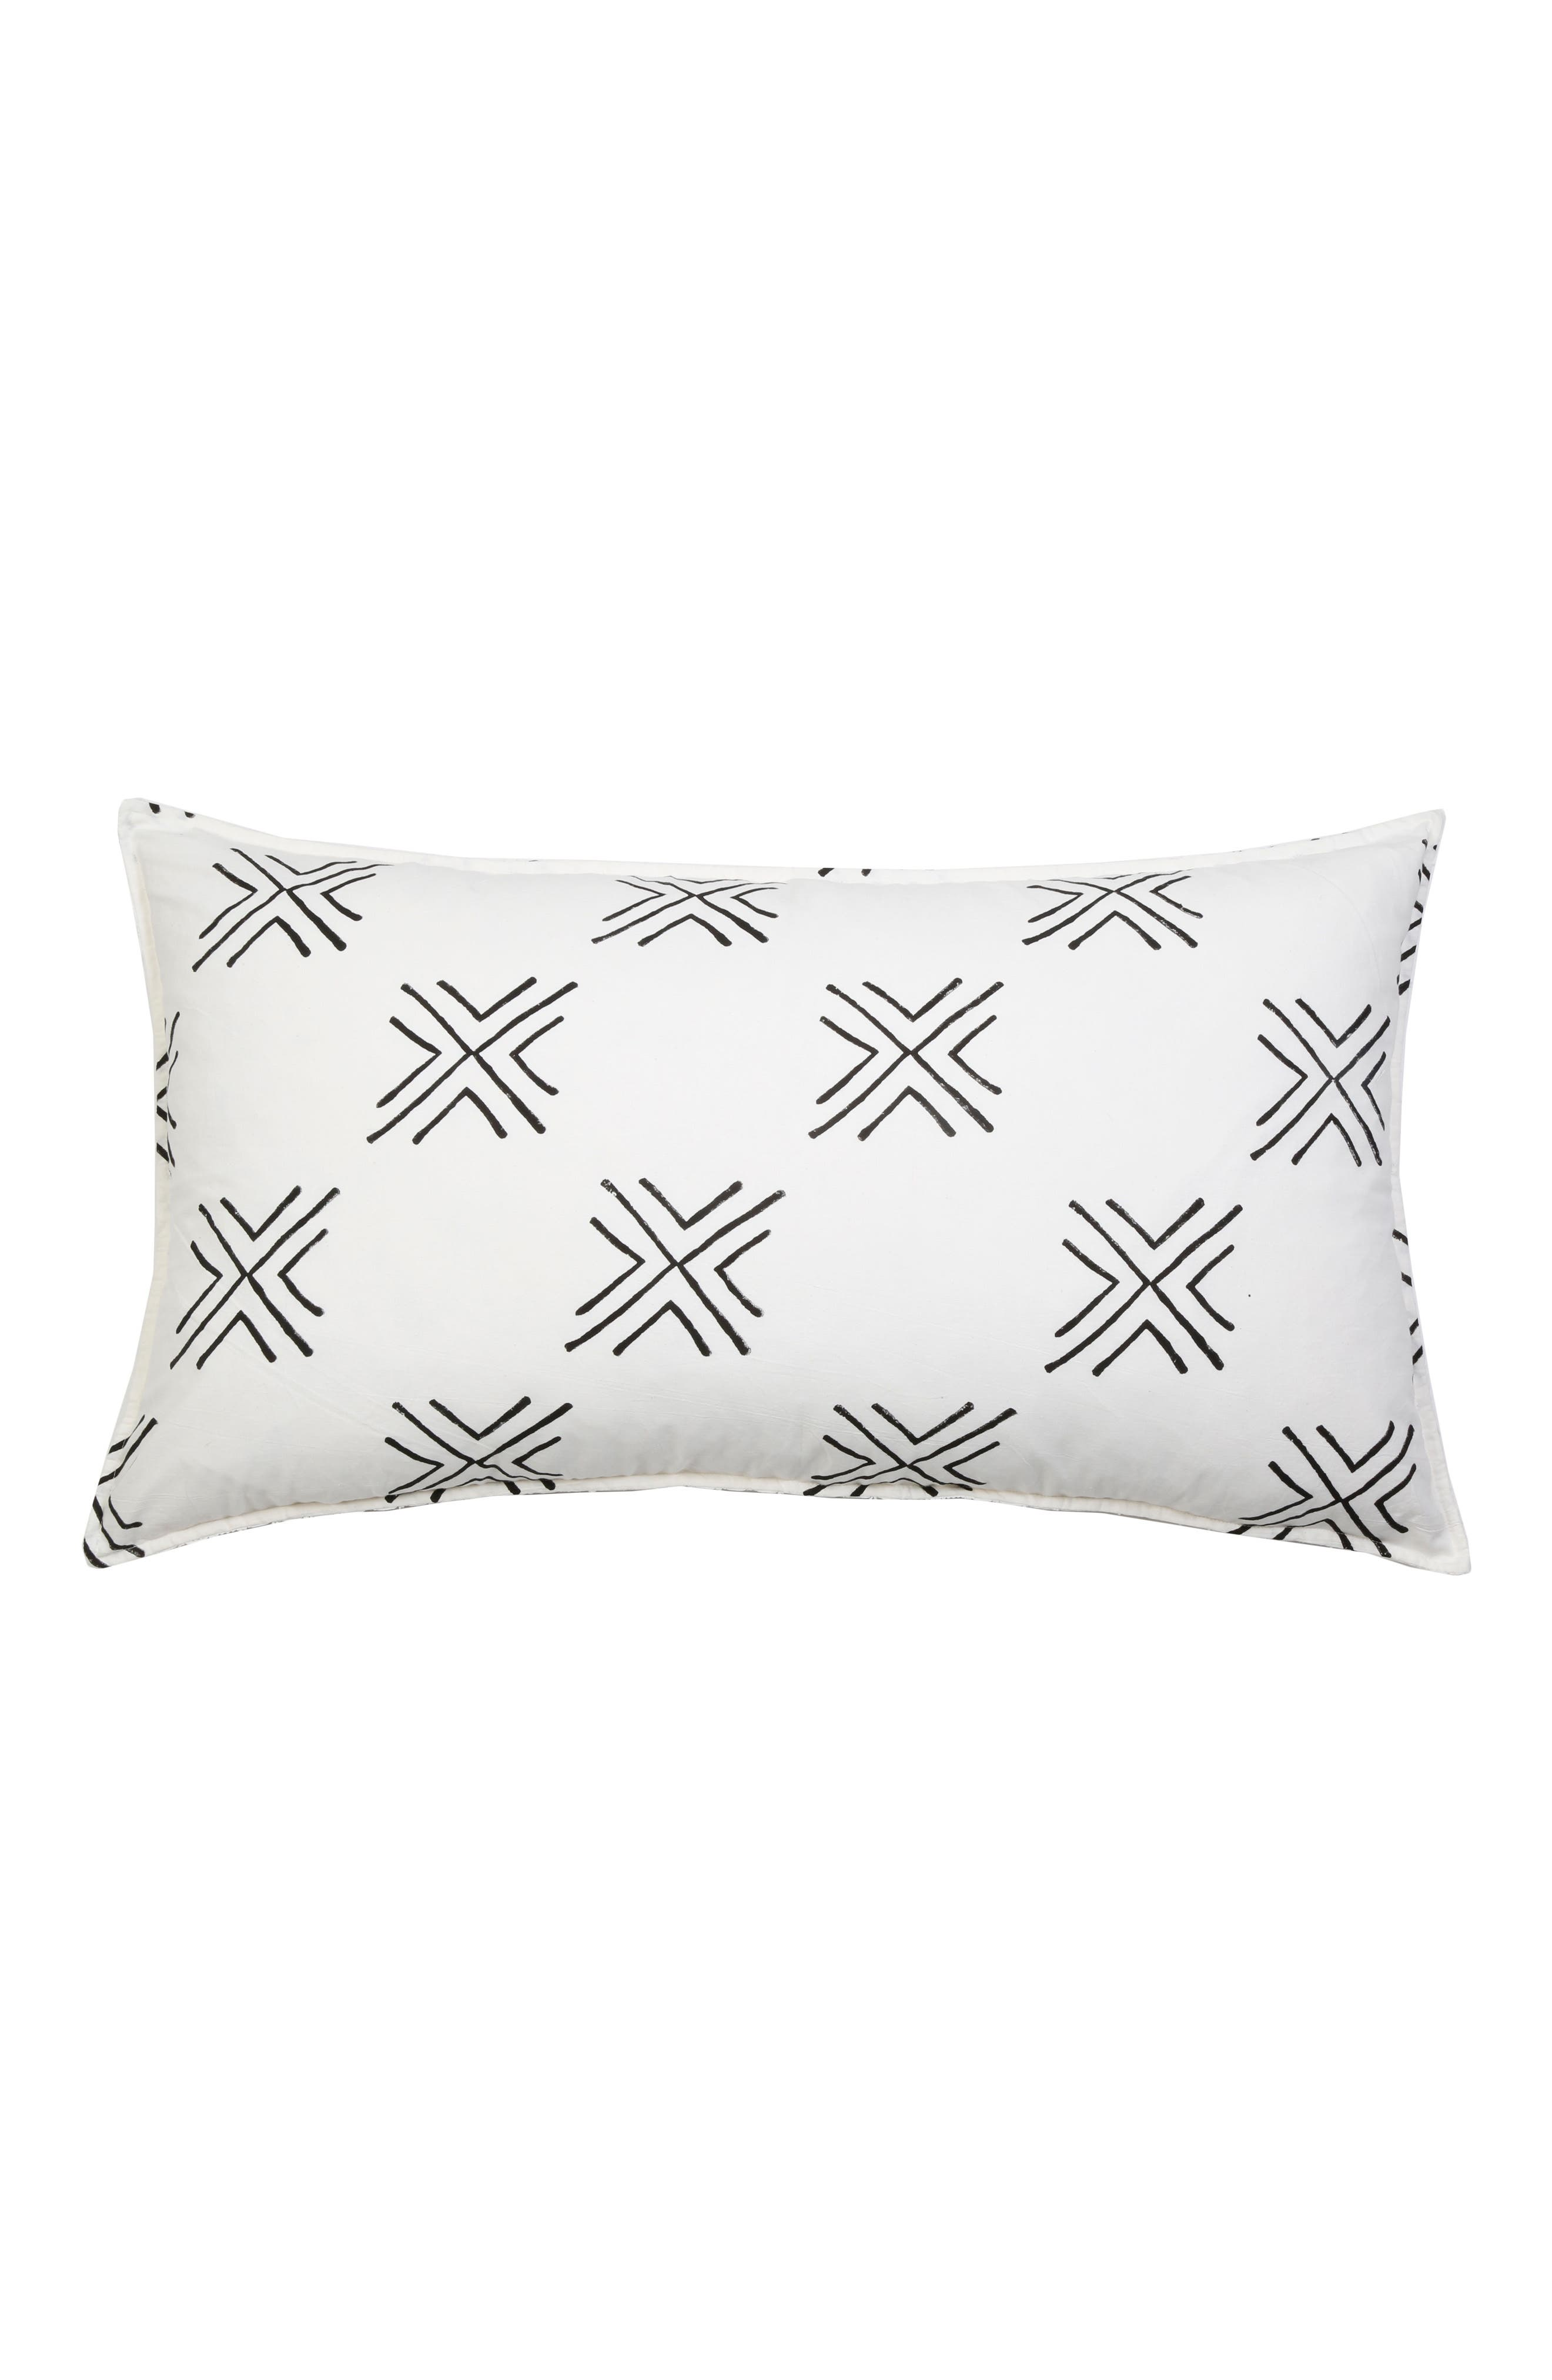 Arrow Accent Pillow,                             Main thumbnail 1, color,